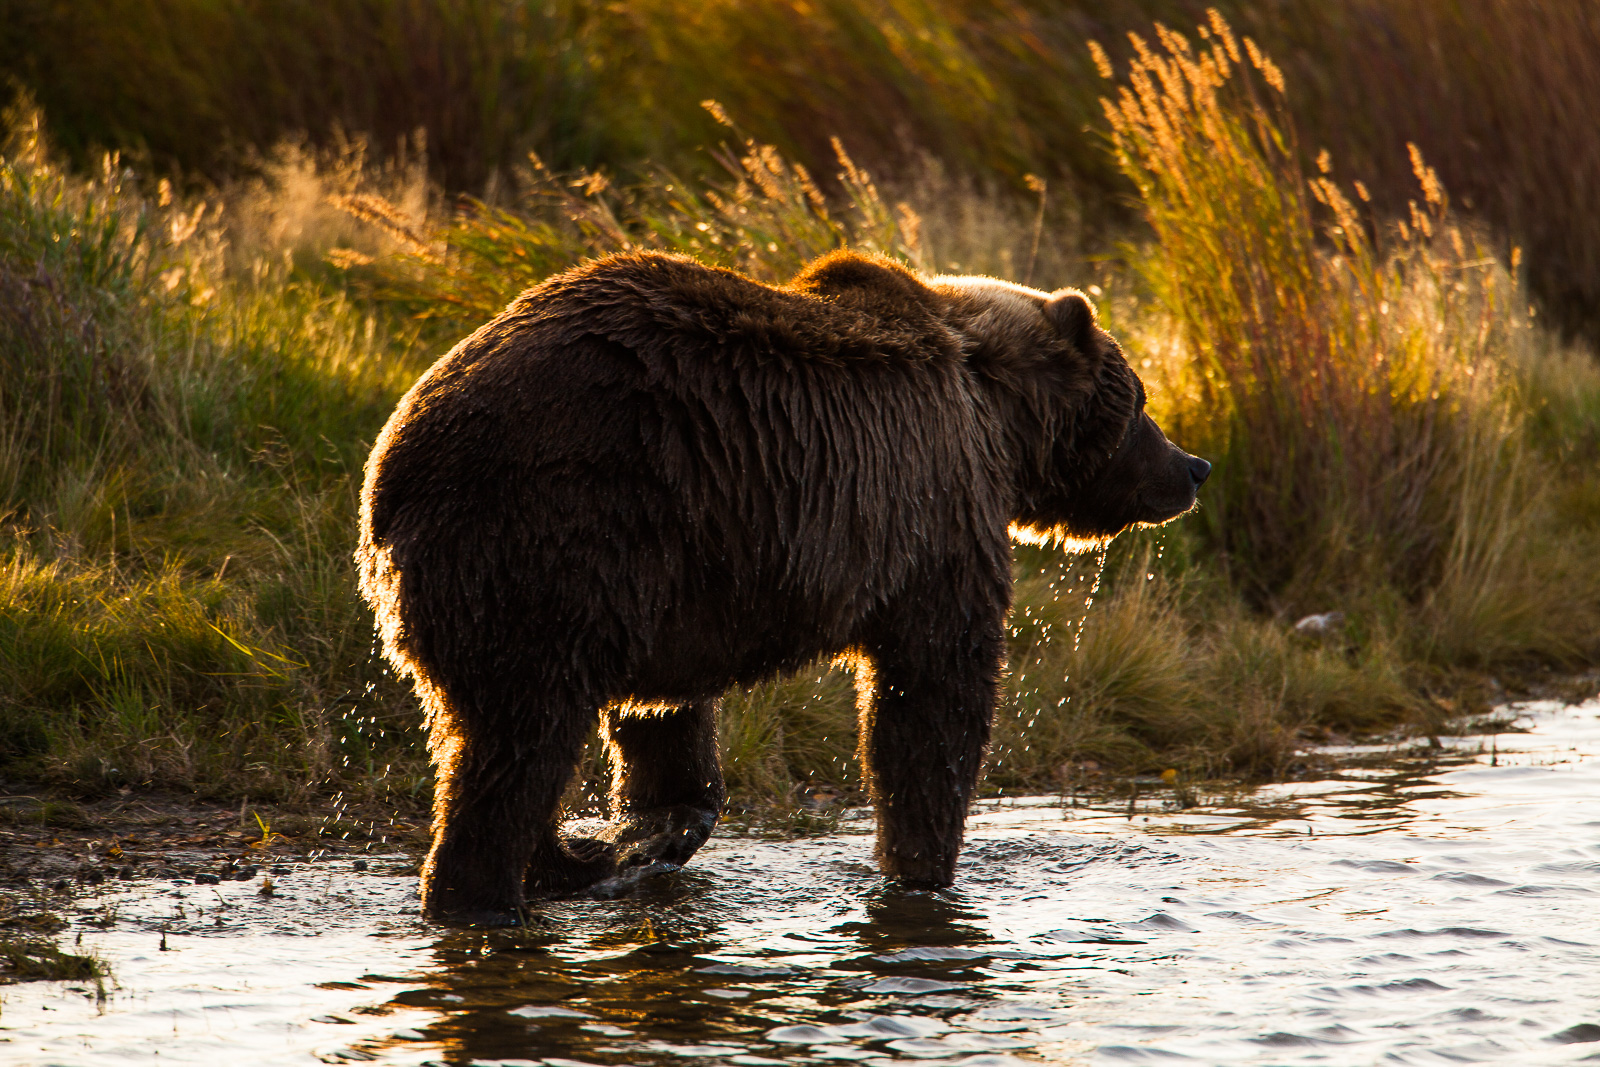 Backlit,Backlit,salmon,Wildlife,river,water,katmai national park,trees,yellow,horizontal, bear, grizzly, photo